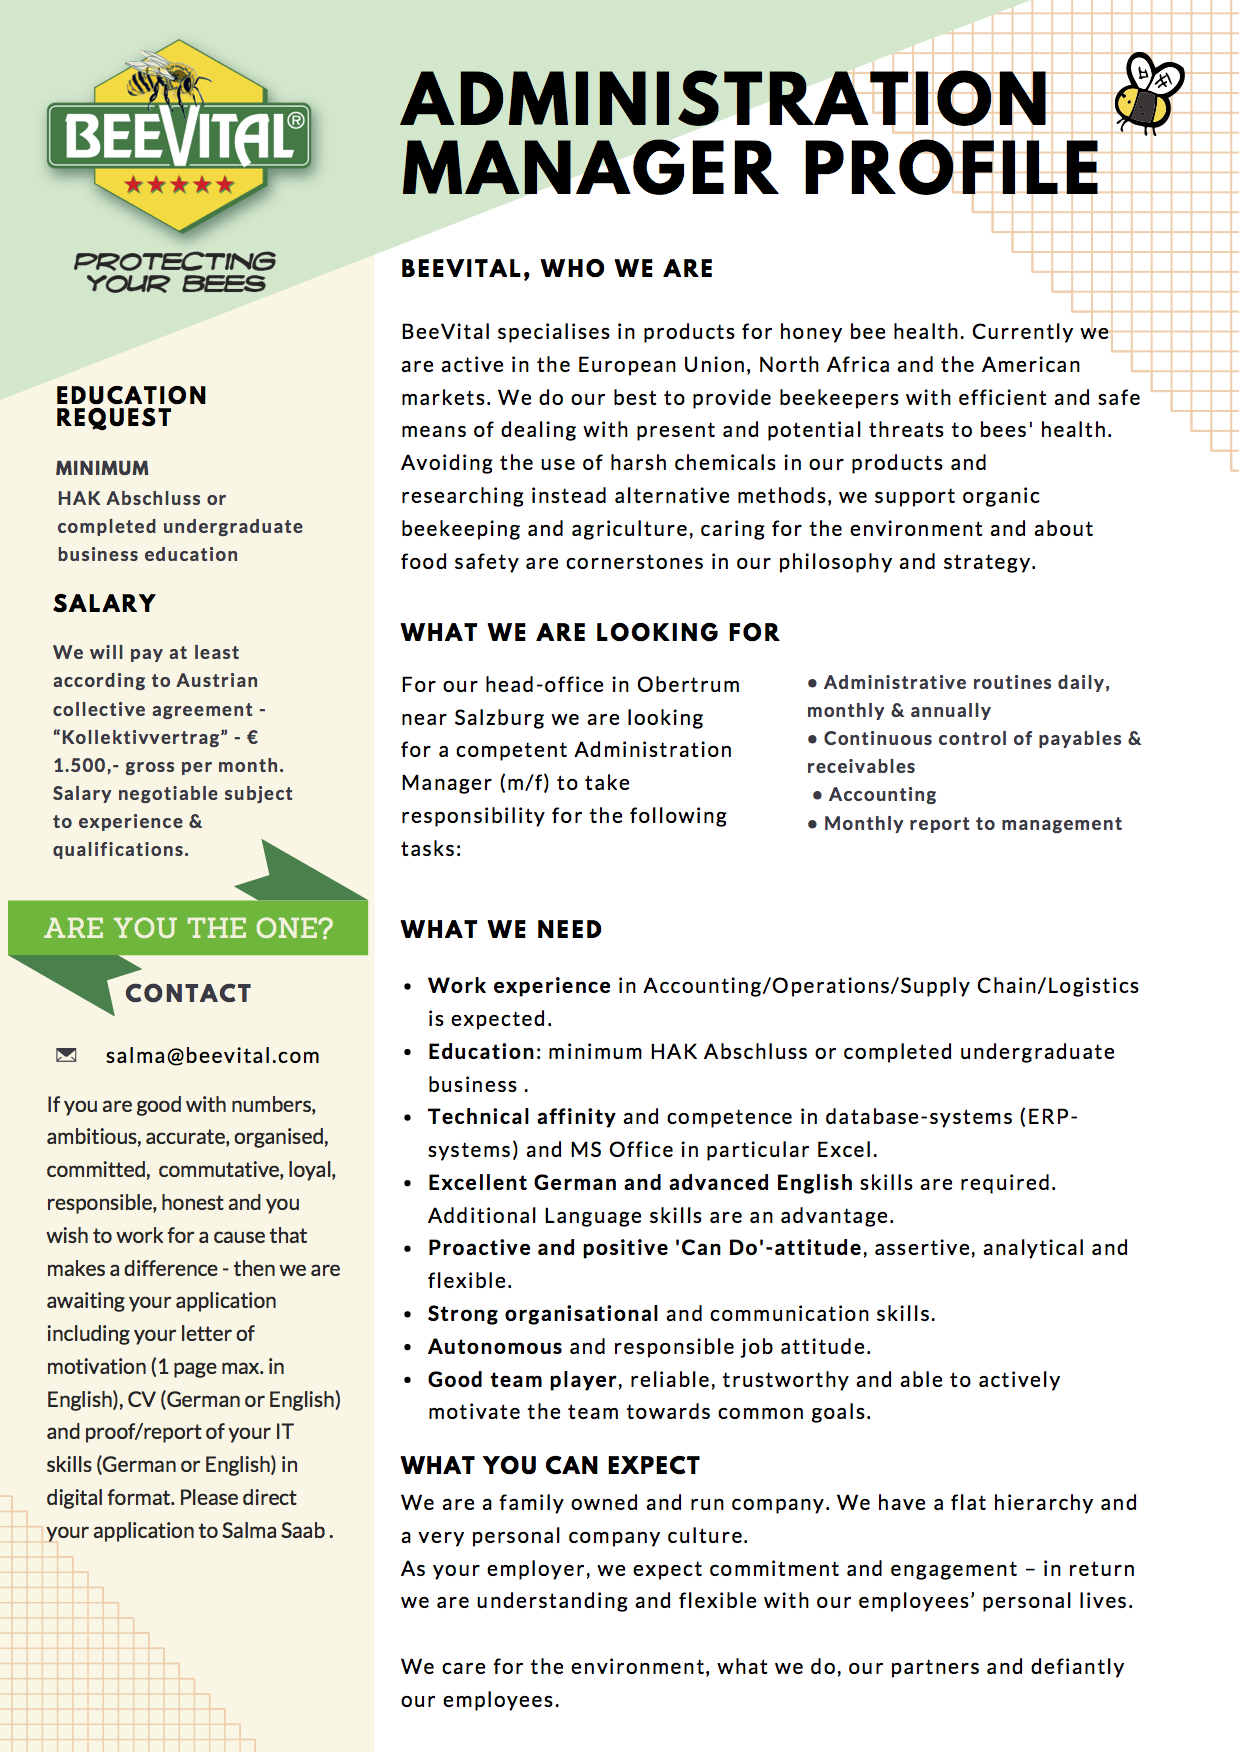 ADMINISTRATION MANAGER PROFILE (8).png